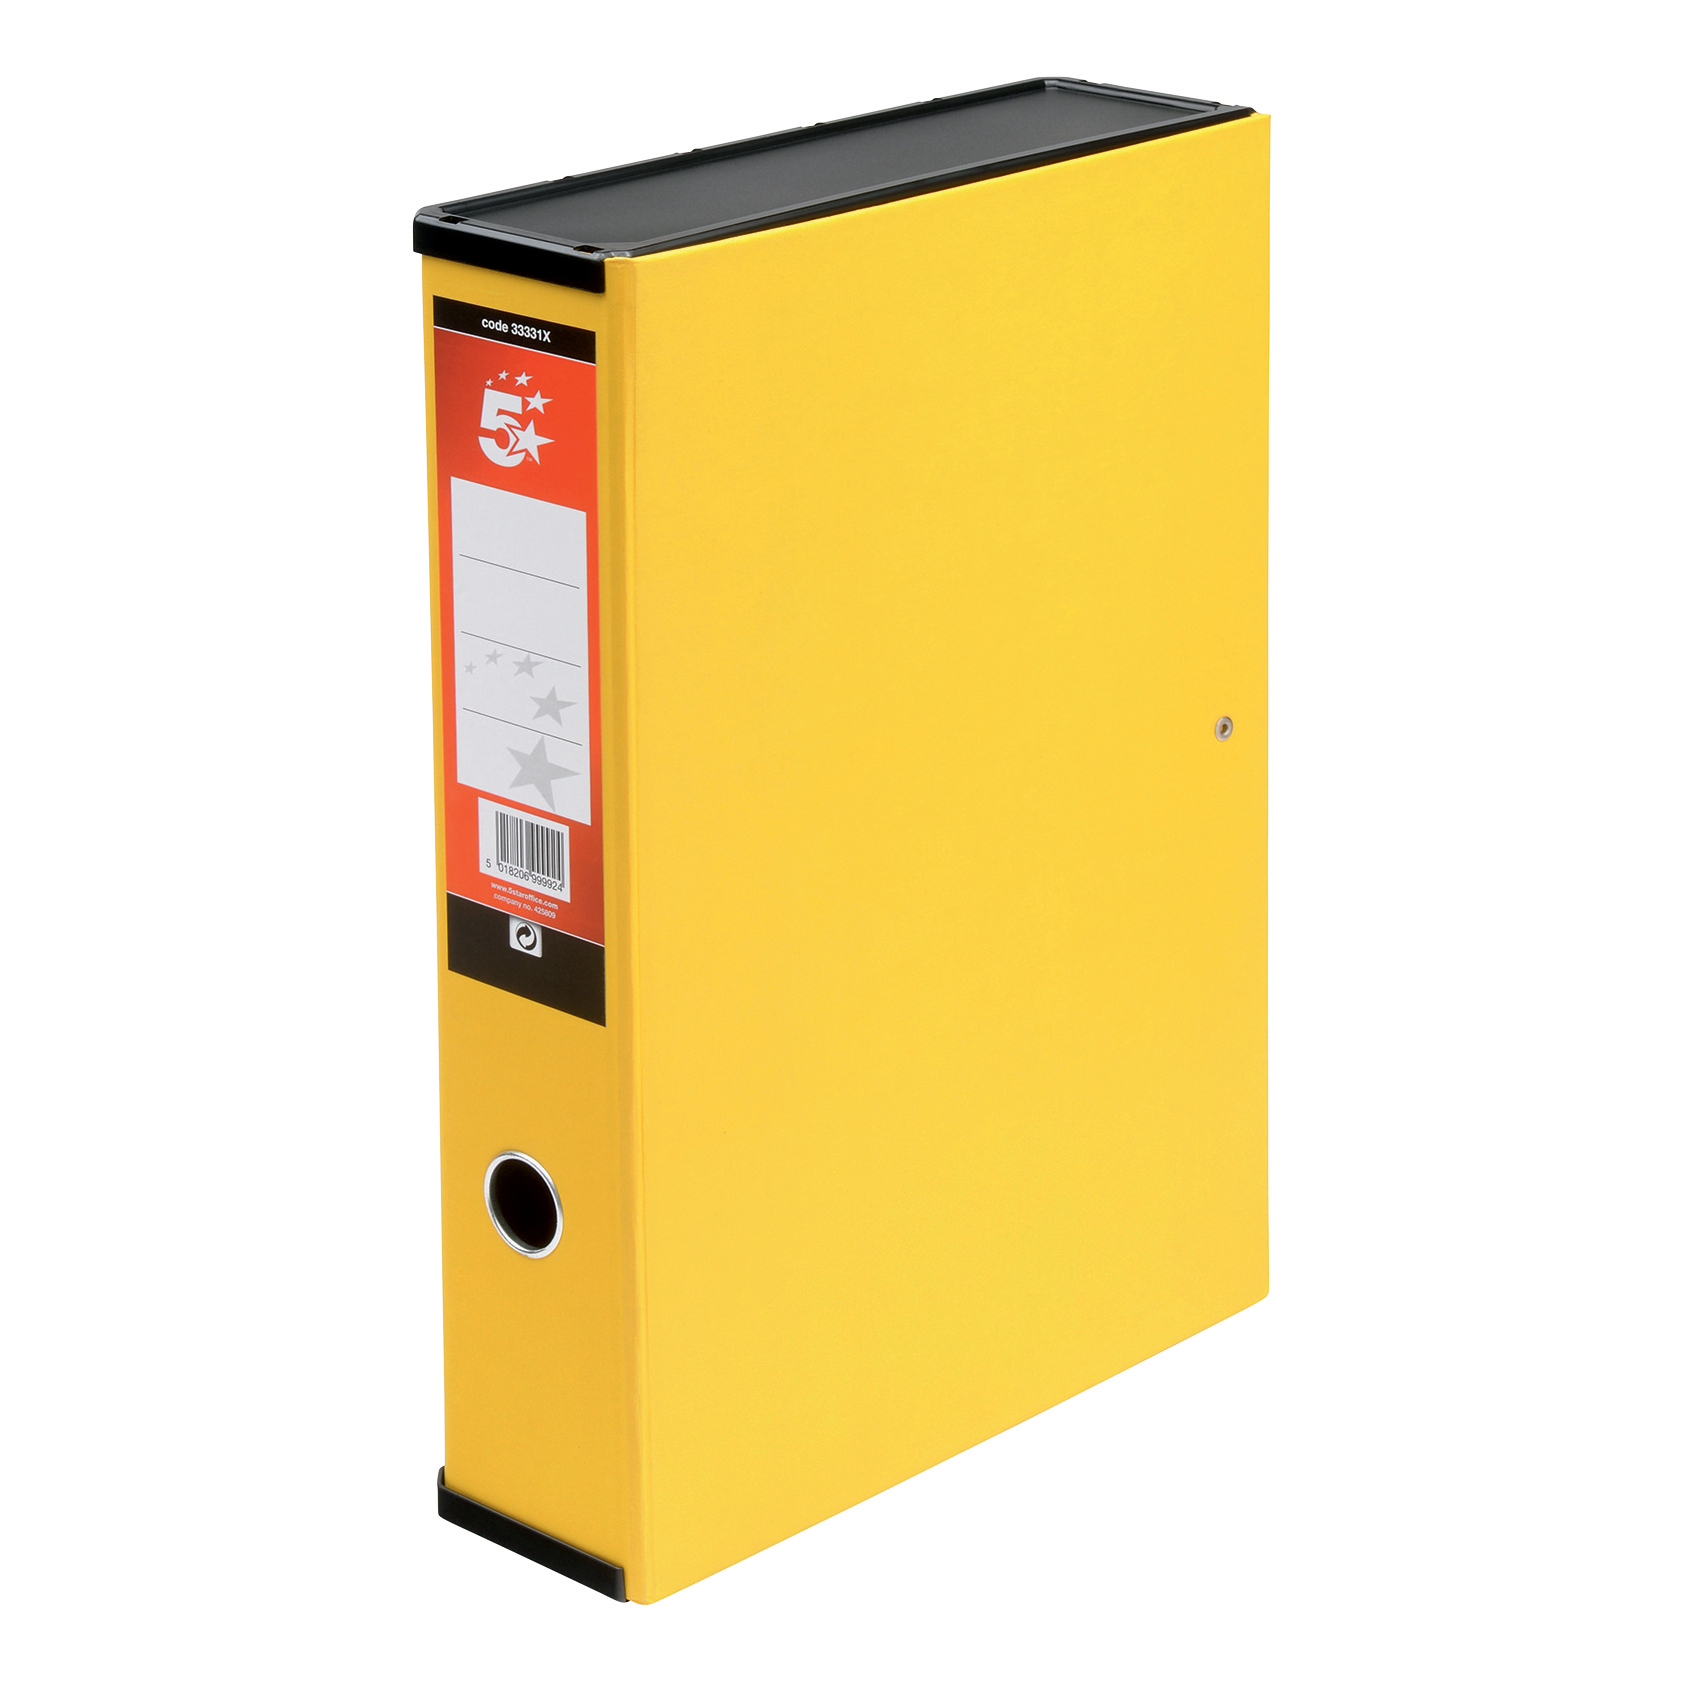 Box Files 5 Star Office Box File 75mm Spine Lock Spring Foolscap Yellow Pack 5